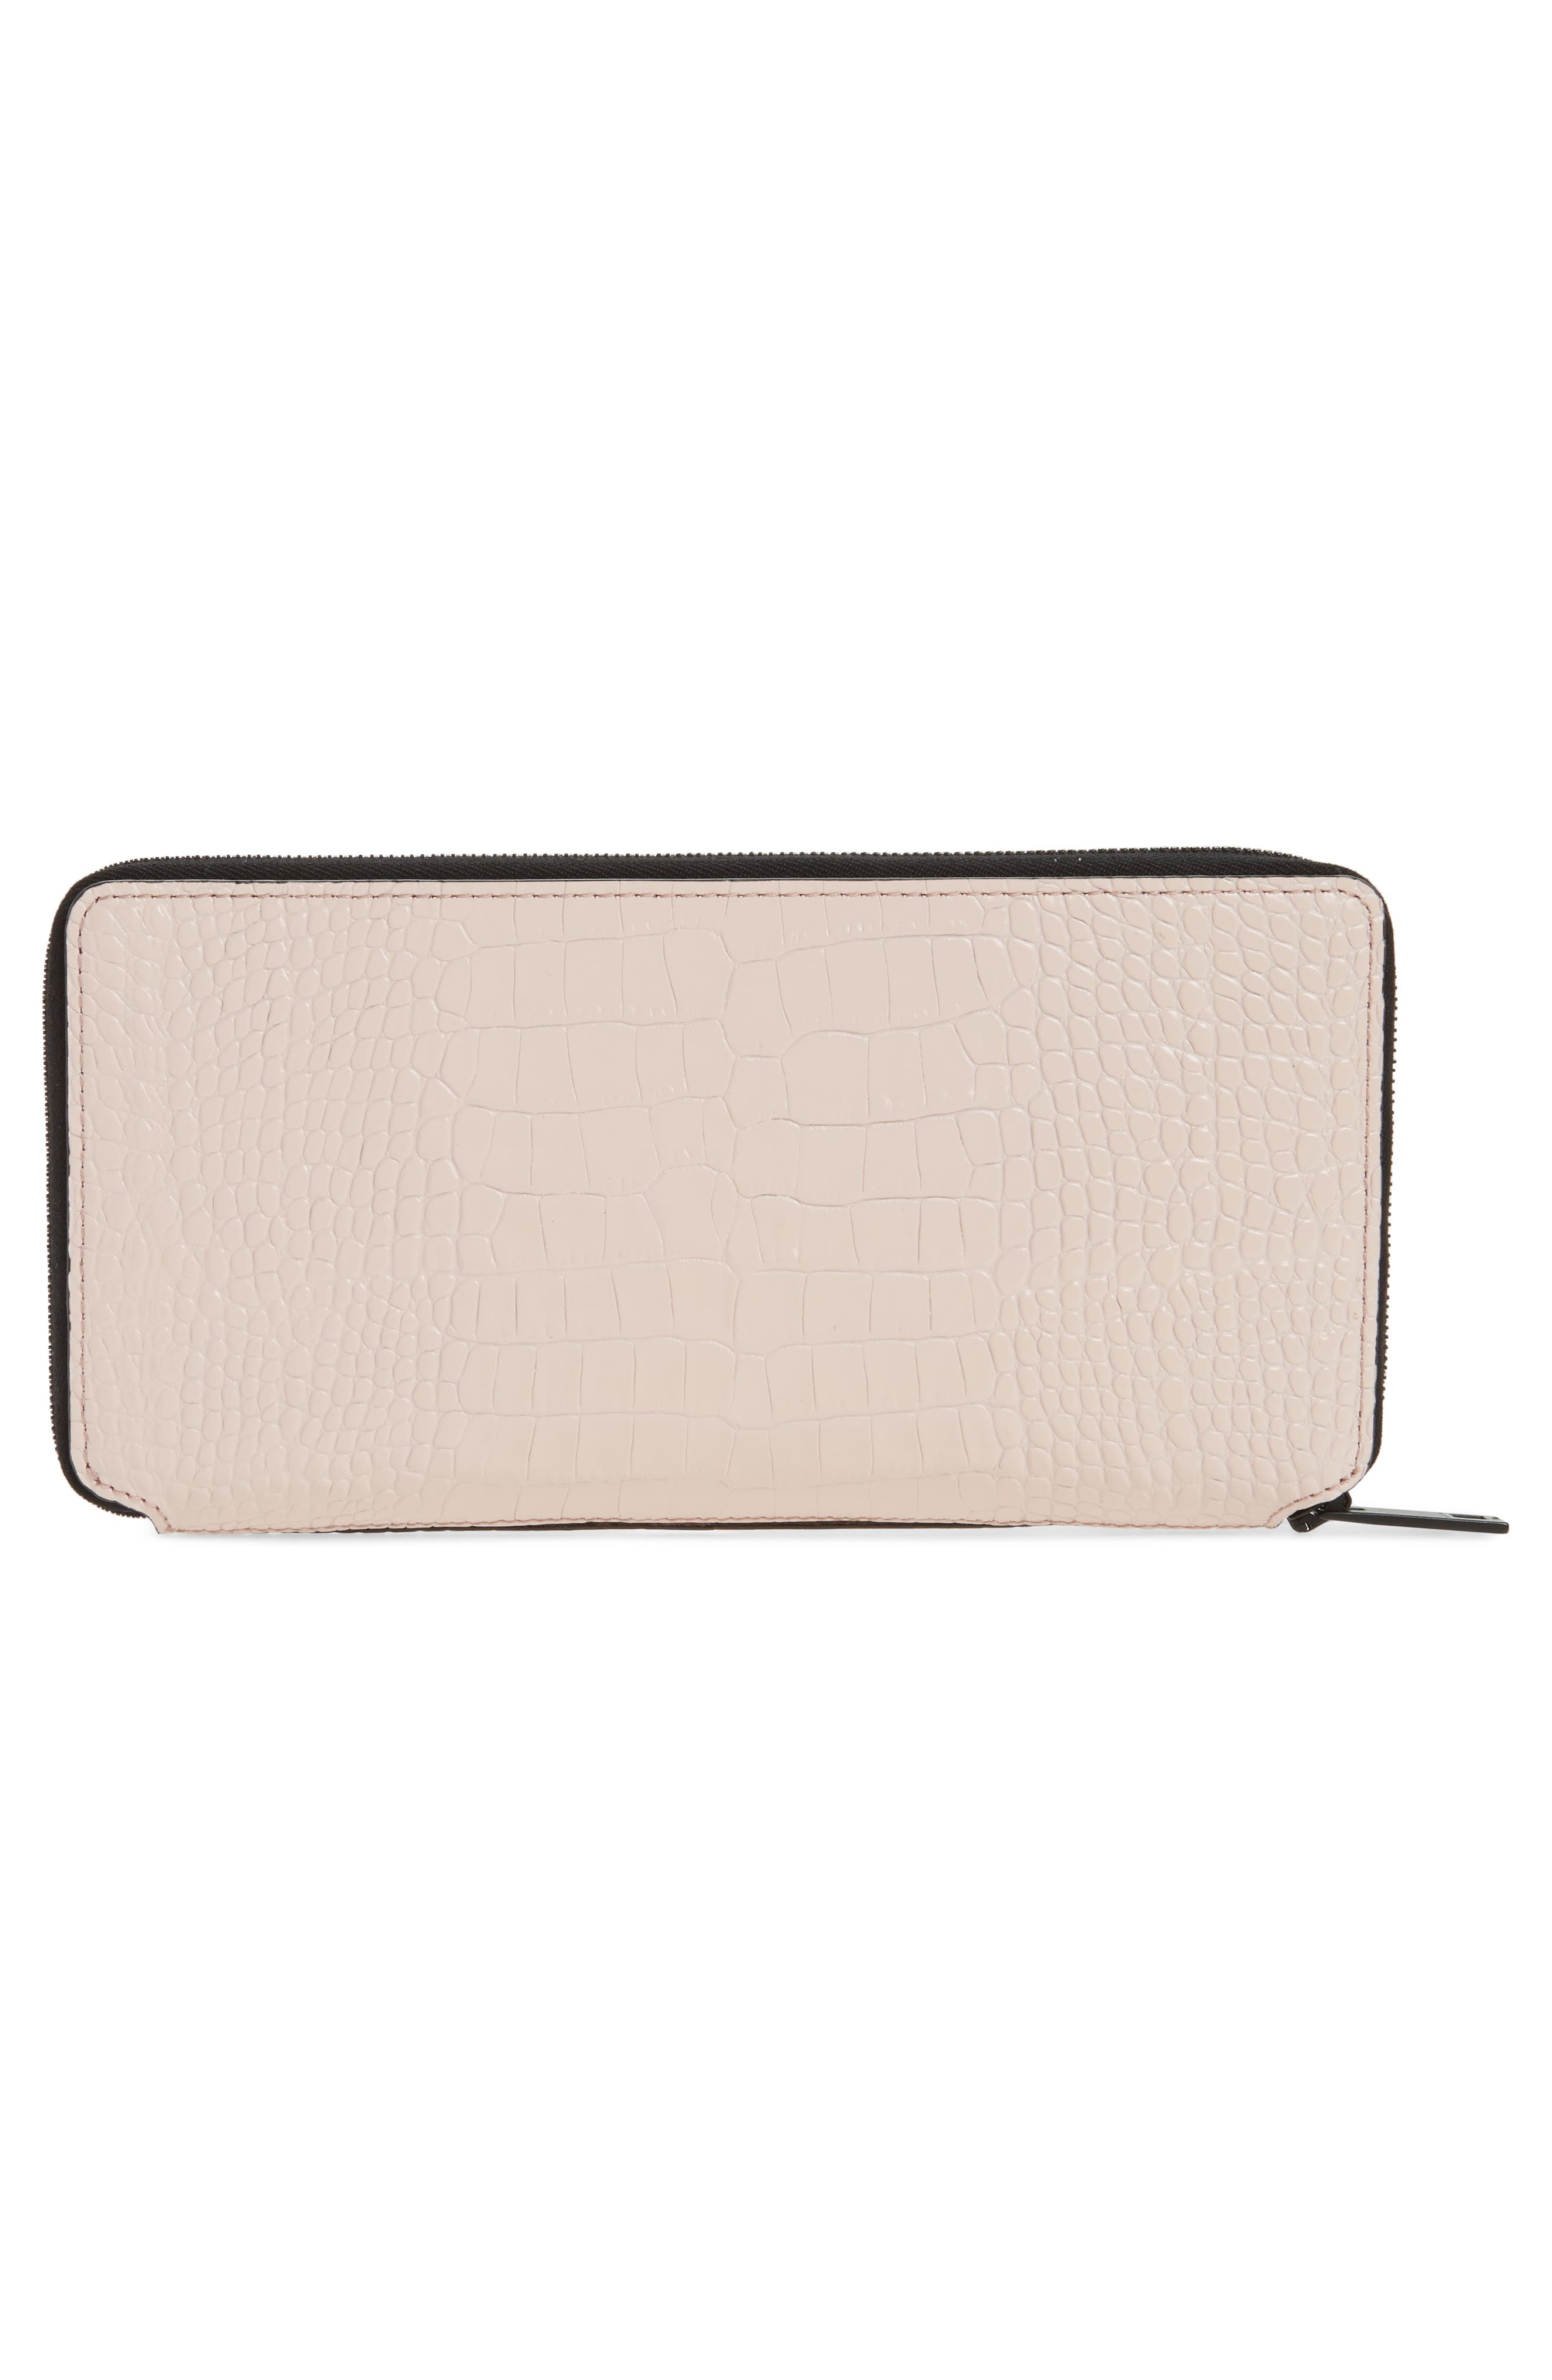 Croc Embossed Zip Around Leather Wallet,                             Alternate thumbnail 6, color,